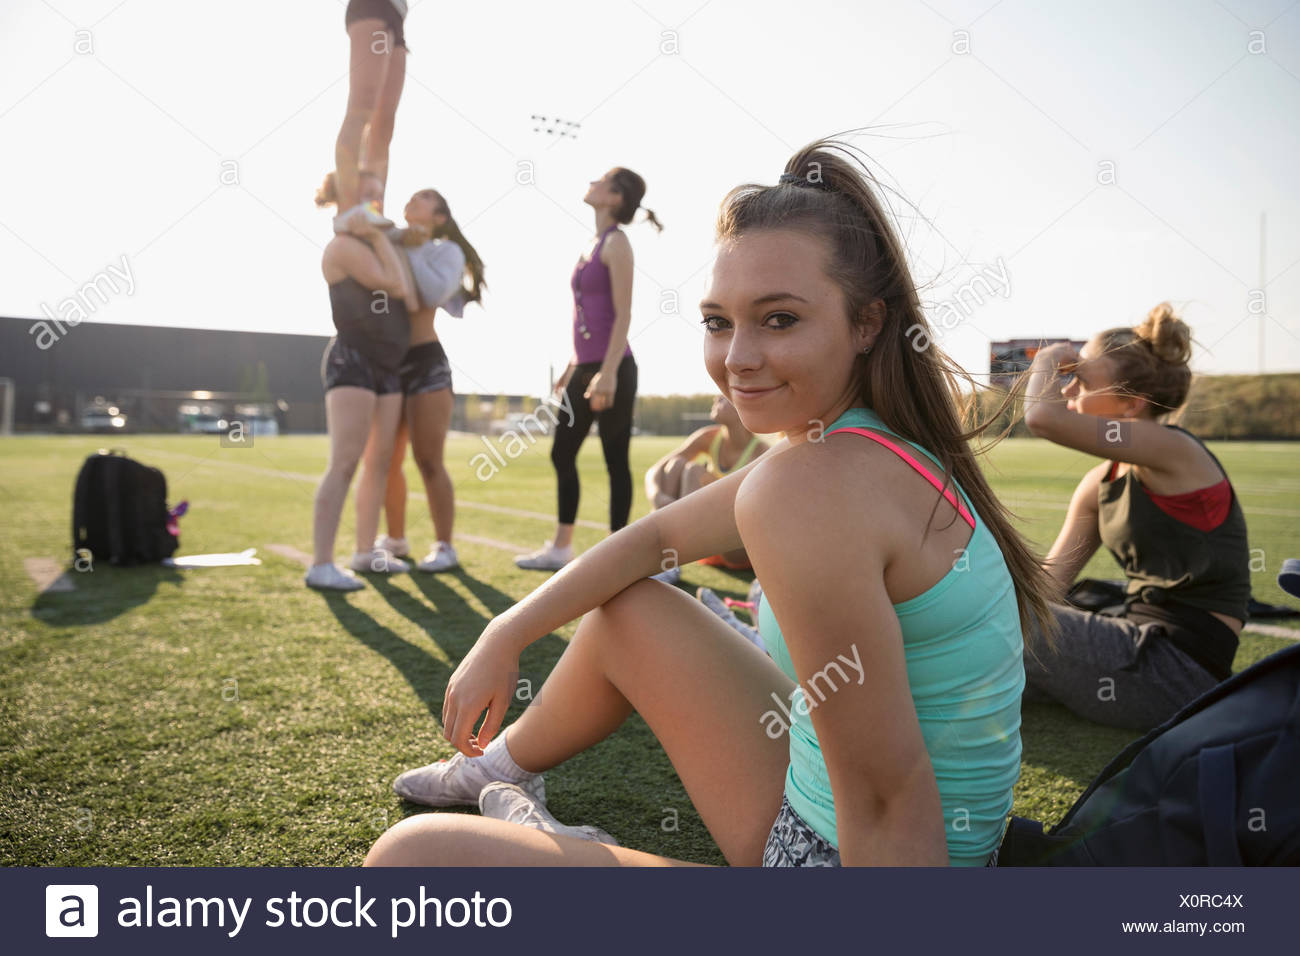 Portrait smiling teenage girl high school cheerleader sitting on sunny football field during practice - Stock Image